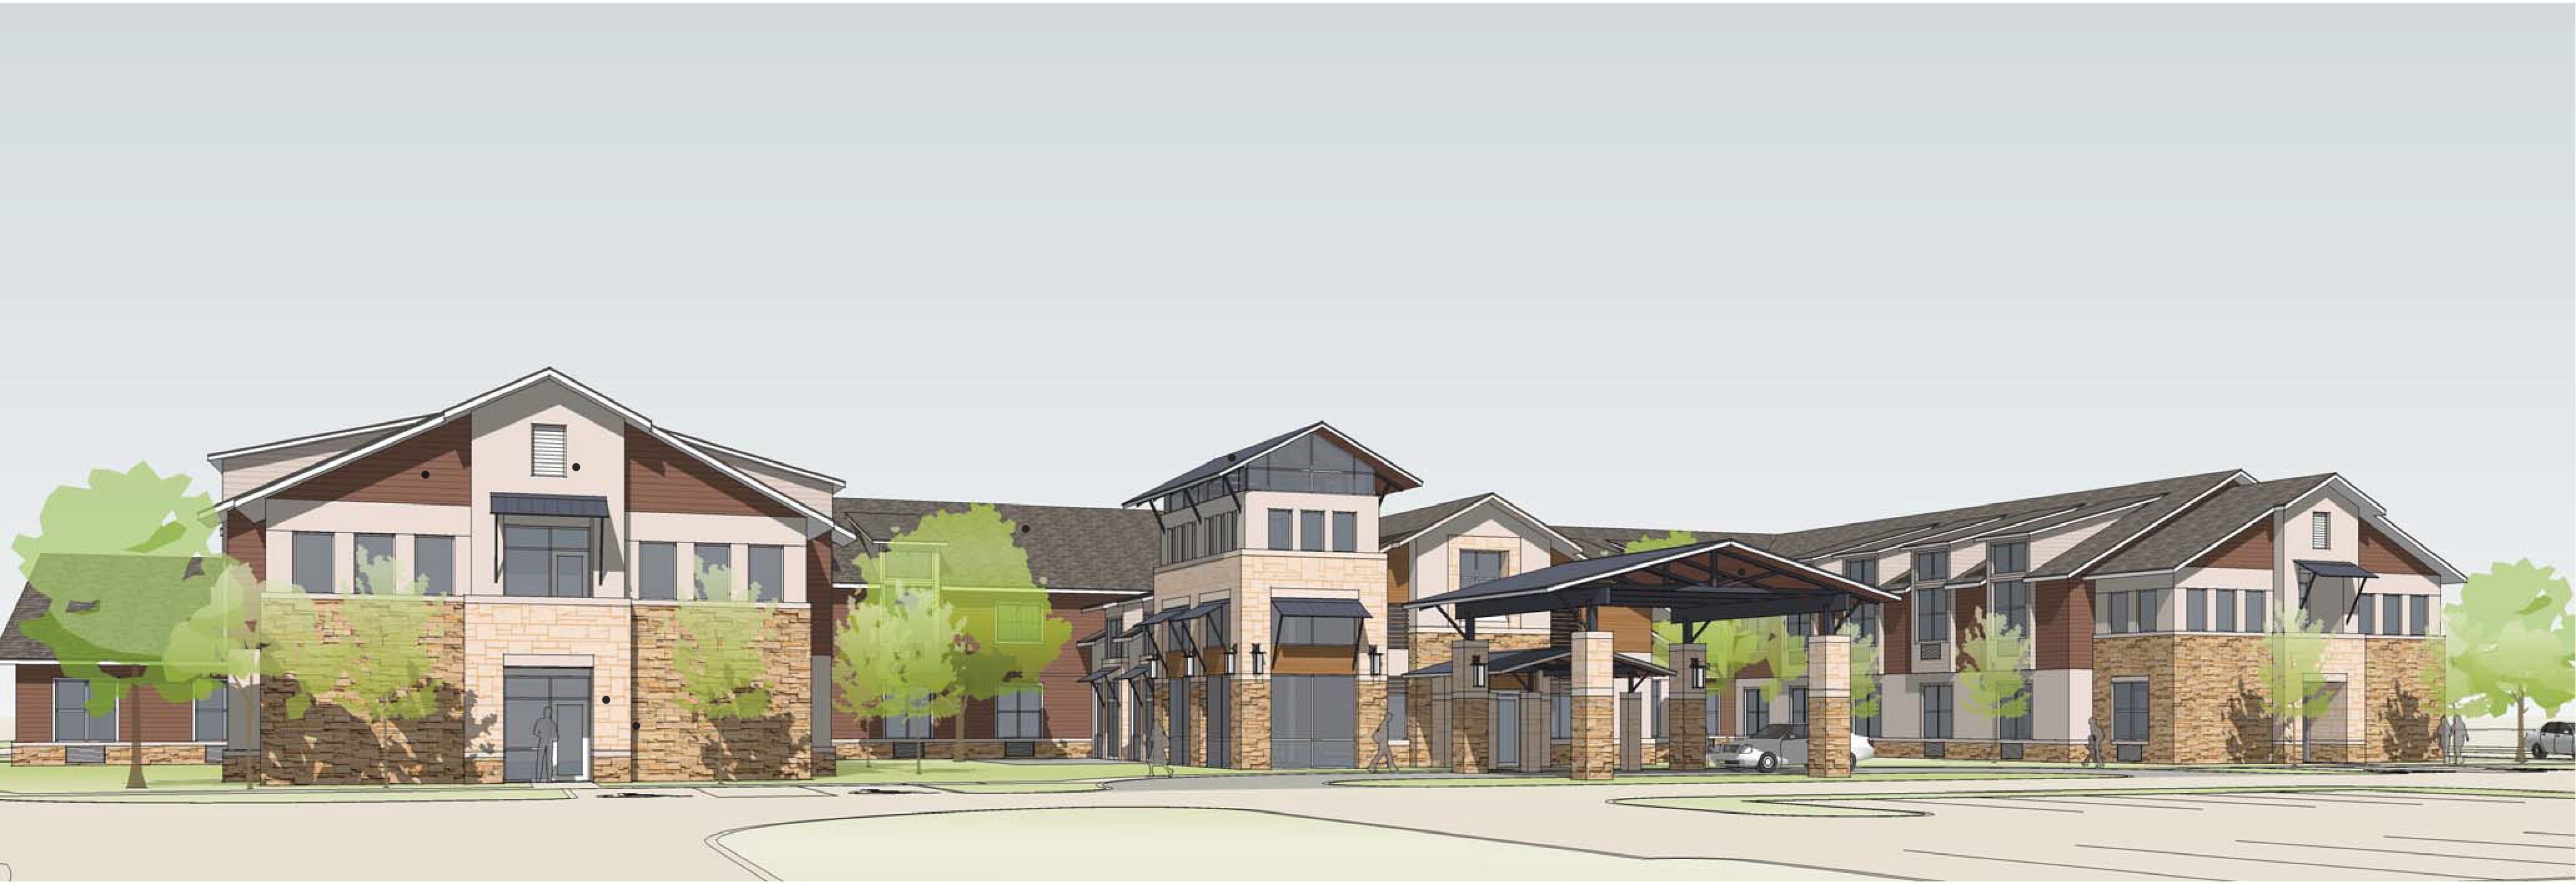 Construction Begins On New Senior Living Facility In Plano Tx